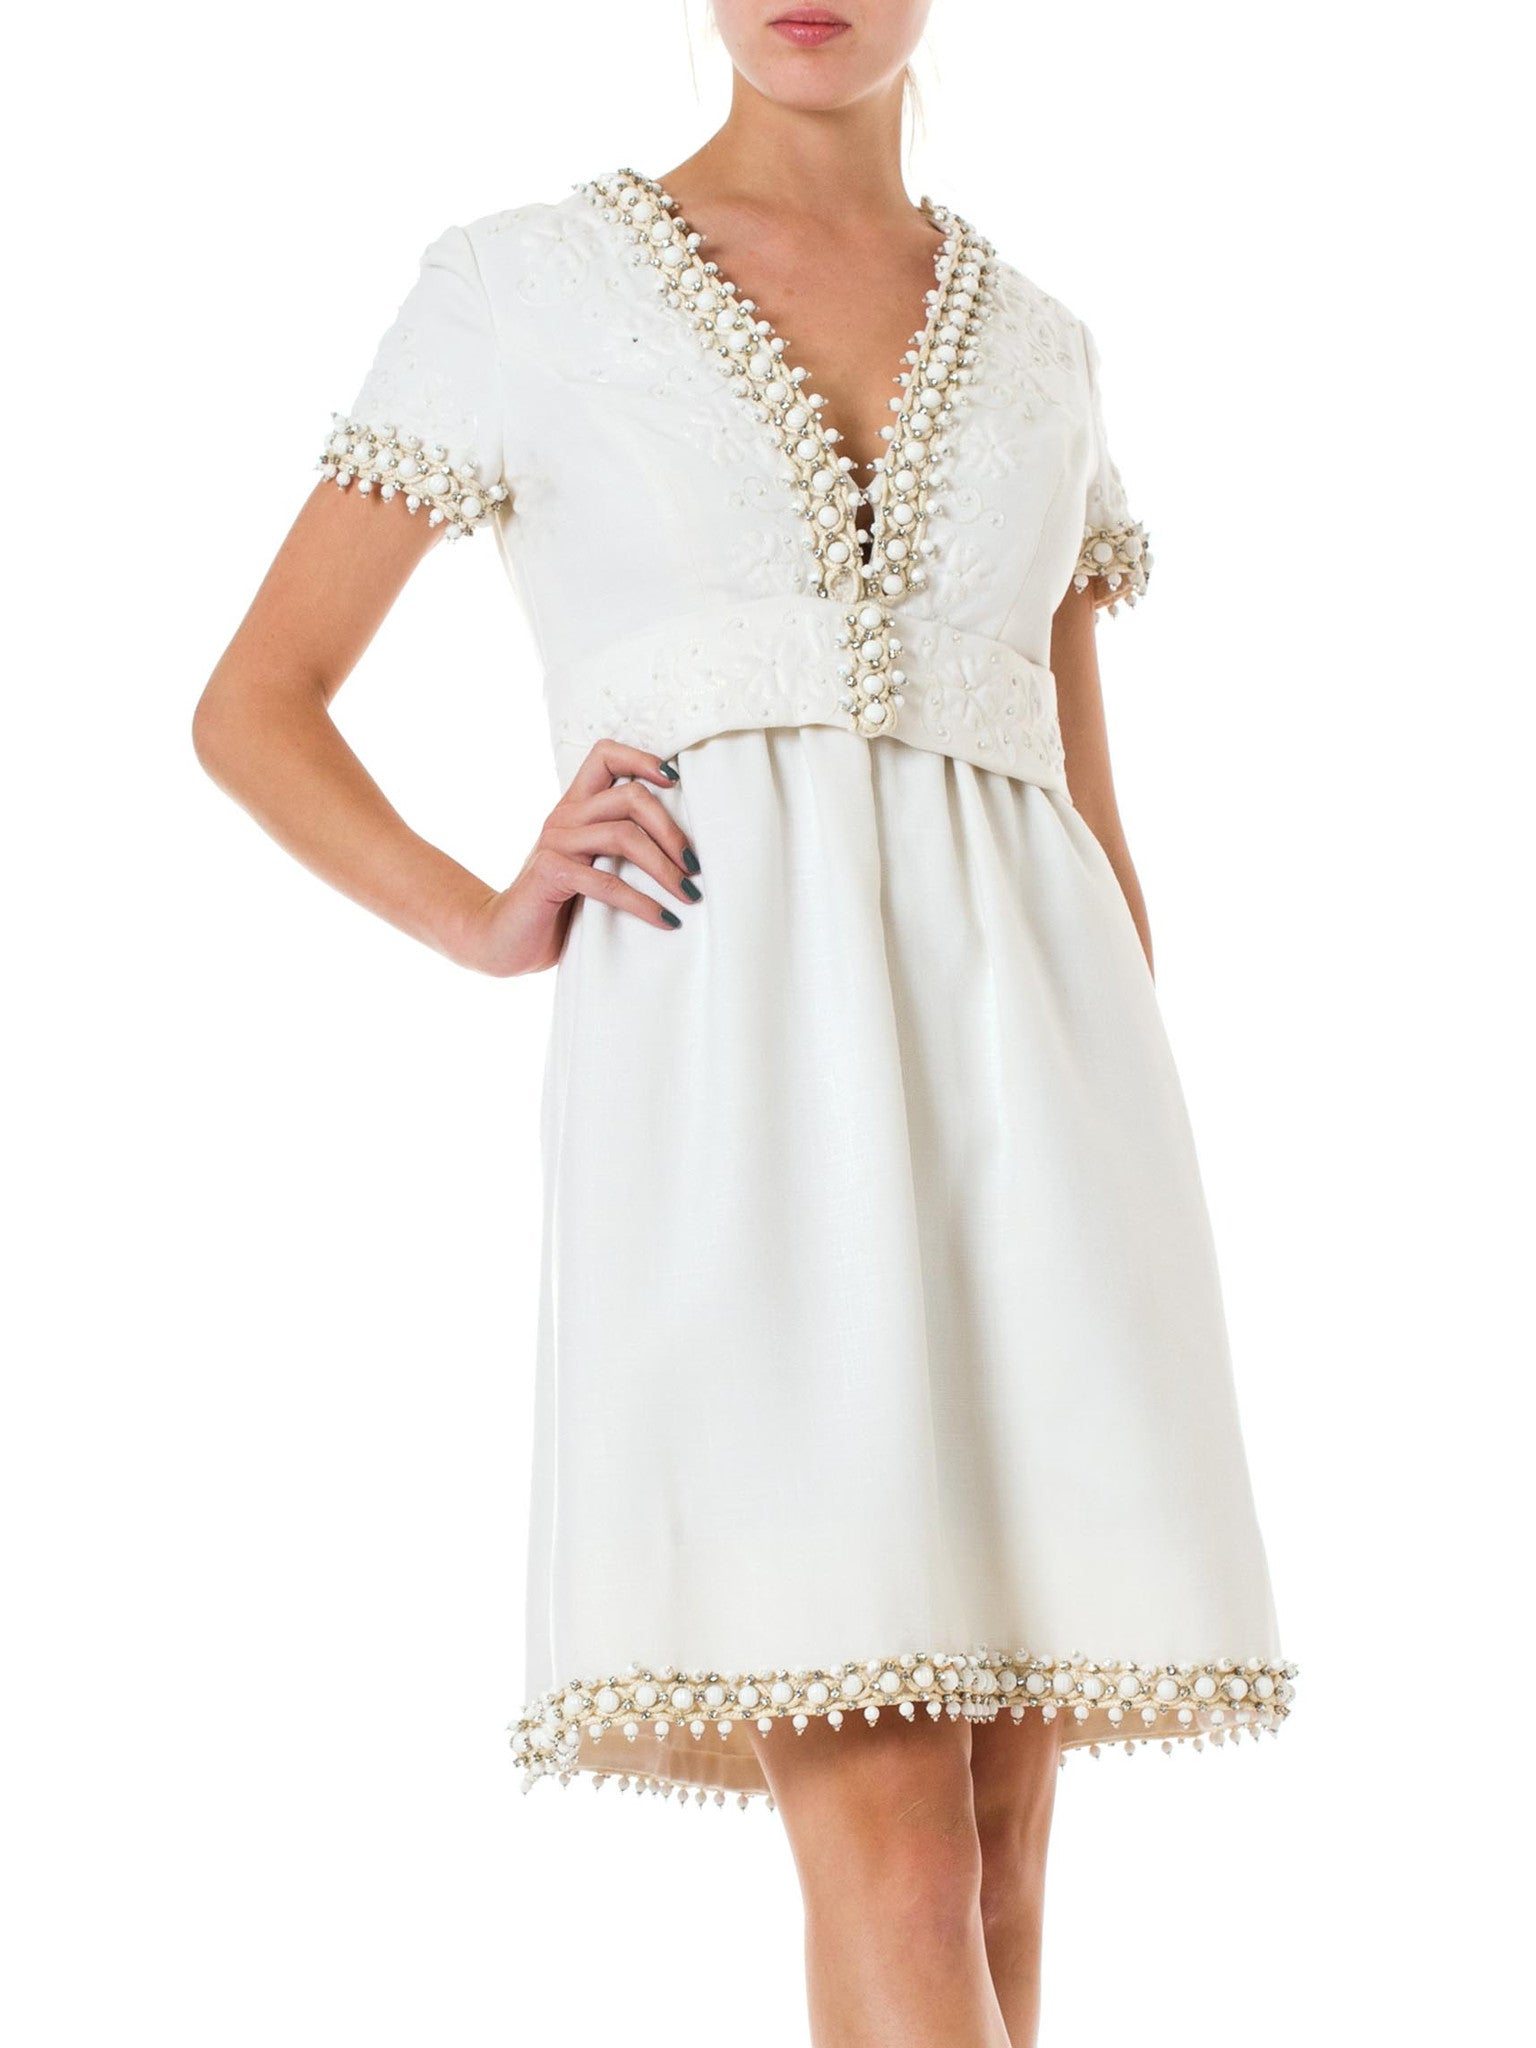 1960s Oscar de la Renta White Crystal Embellished Deep V Belted Short Sleeve Dress